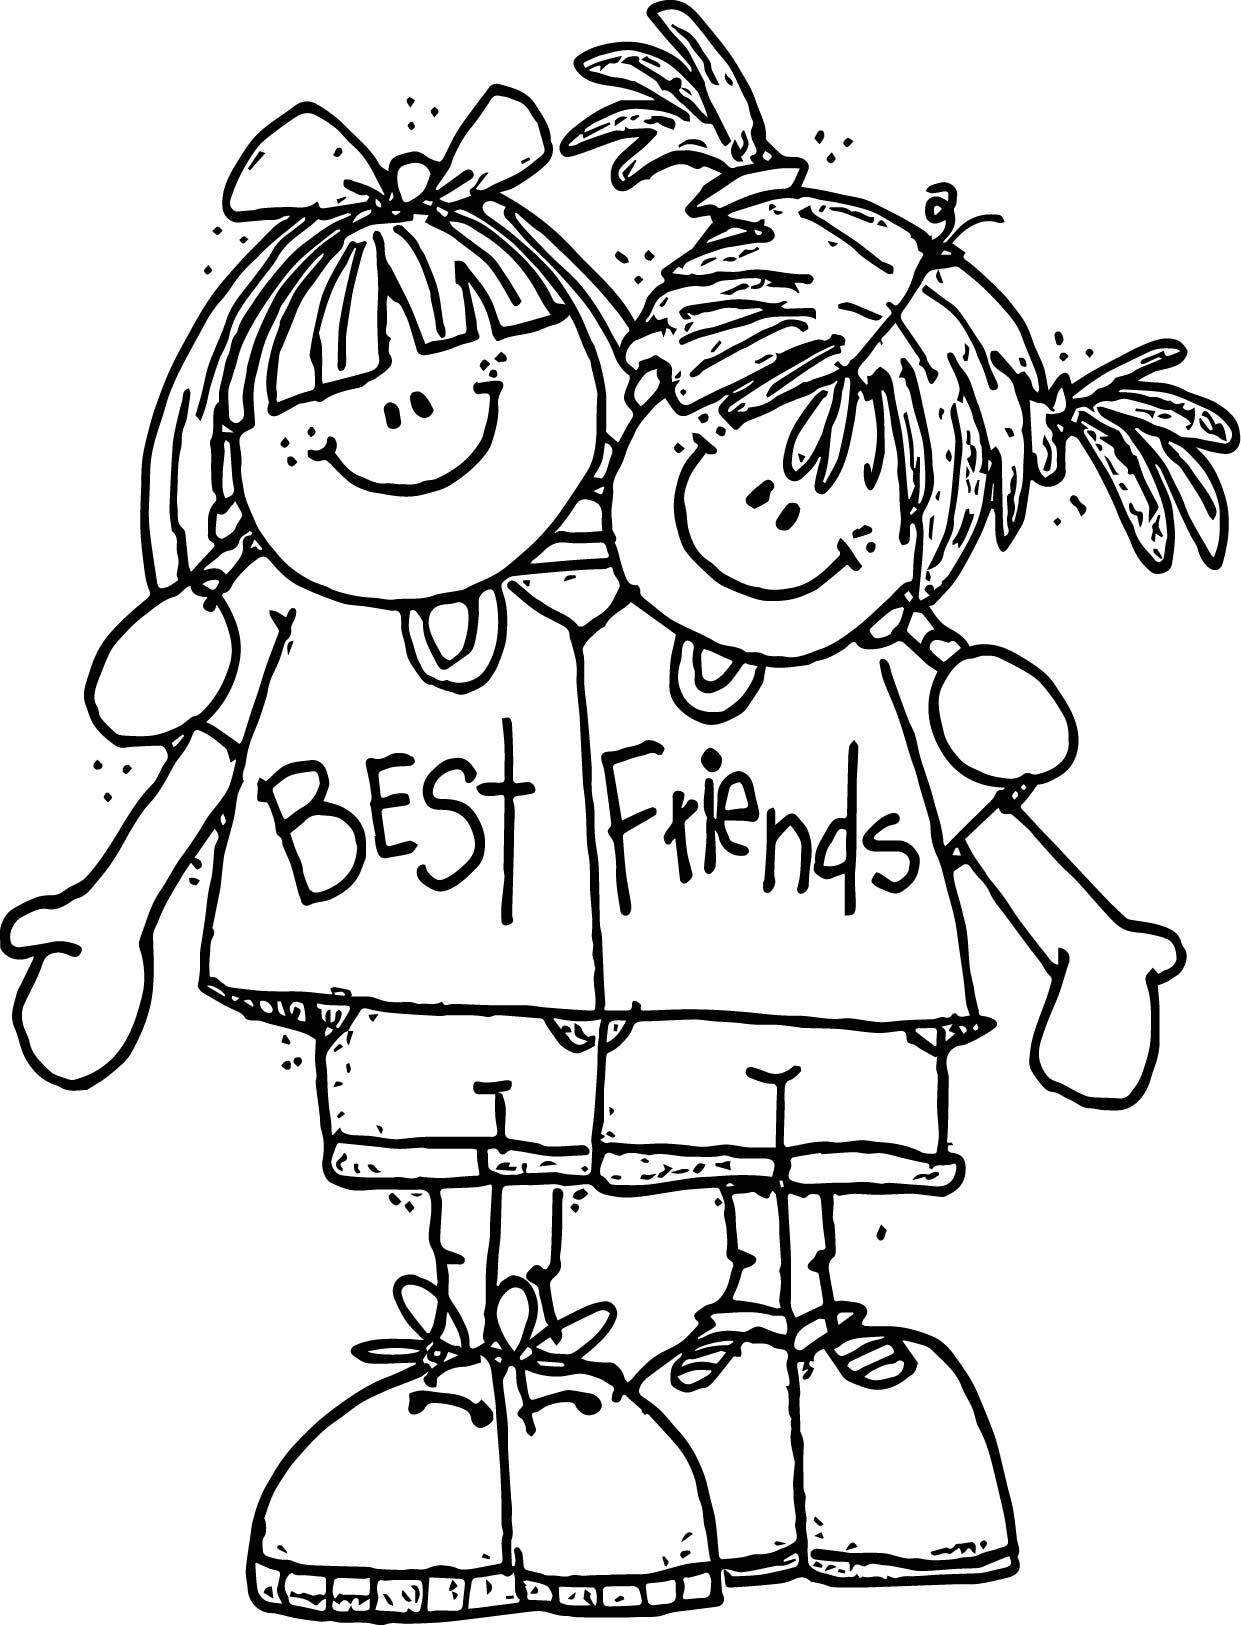 awesome Best Friends Friendship Coloring Page Emoji